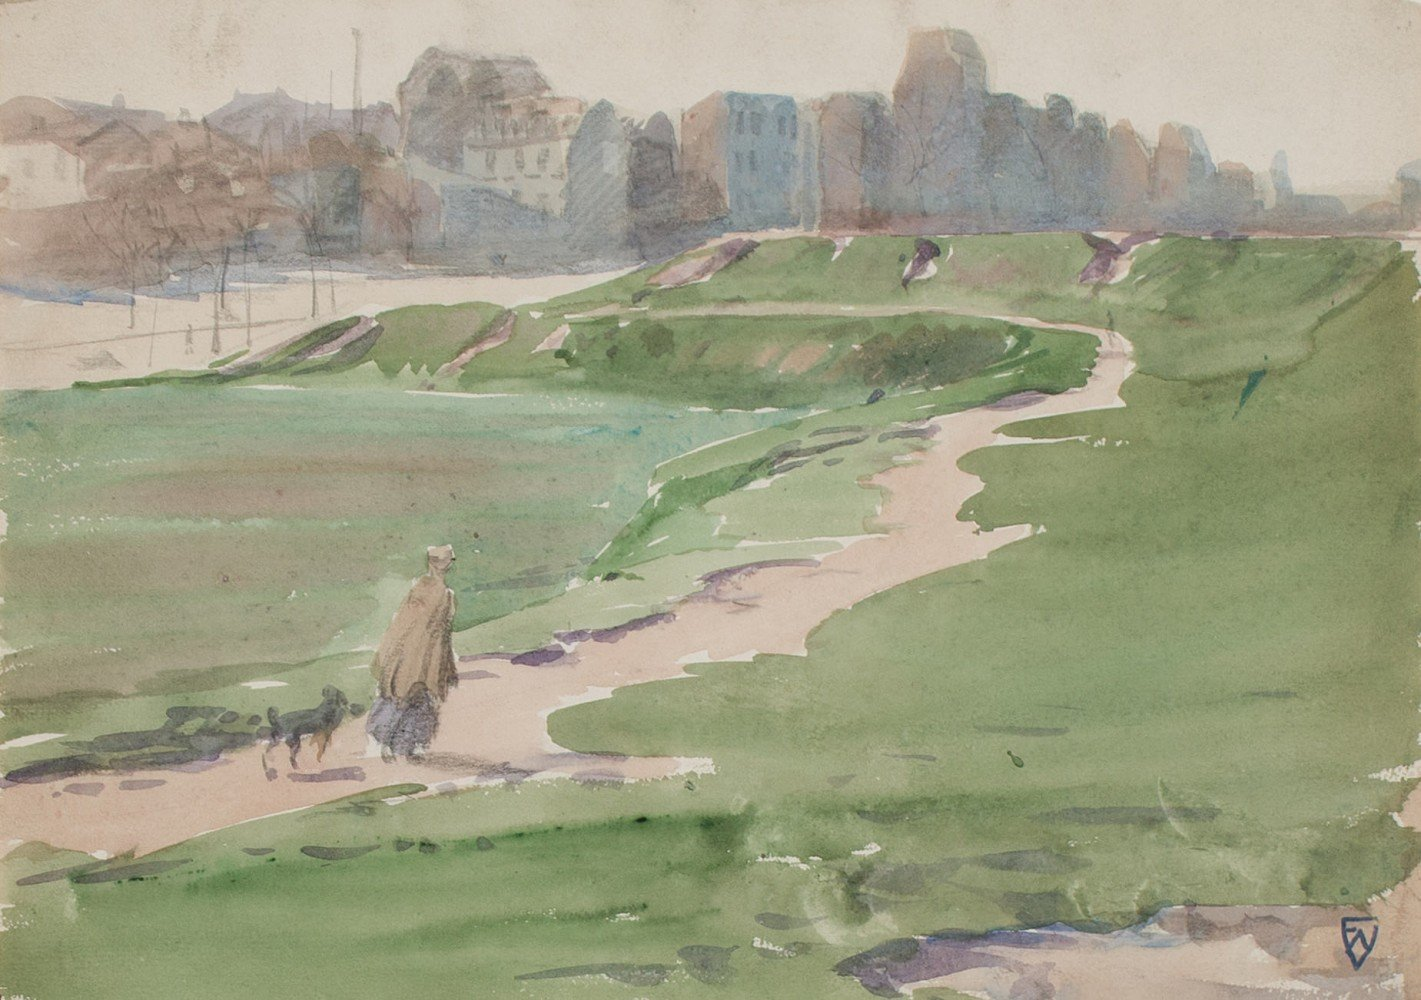 Landscape Watercolor and Graphite on Paper Painting: